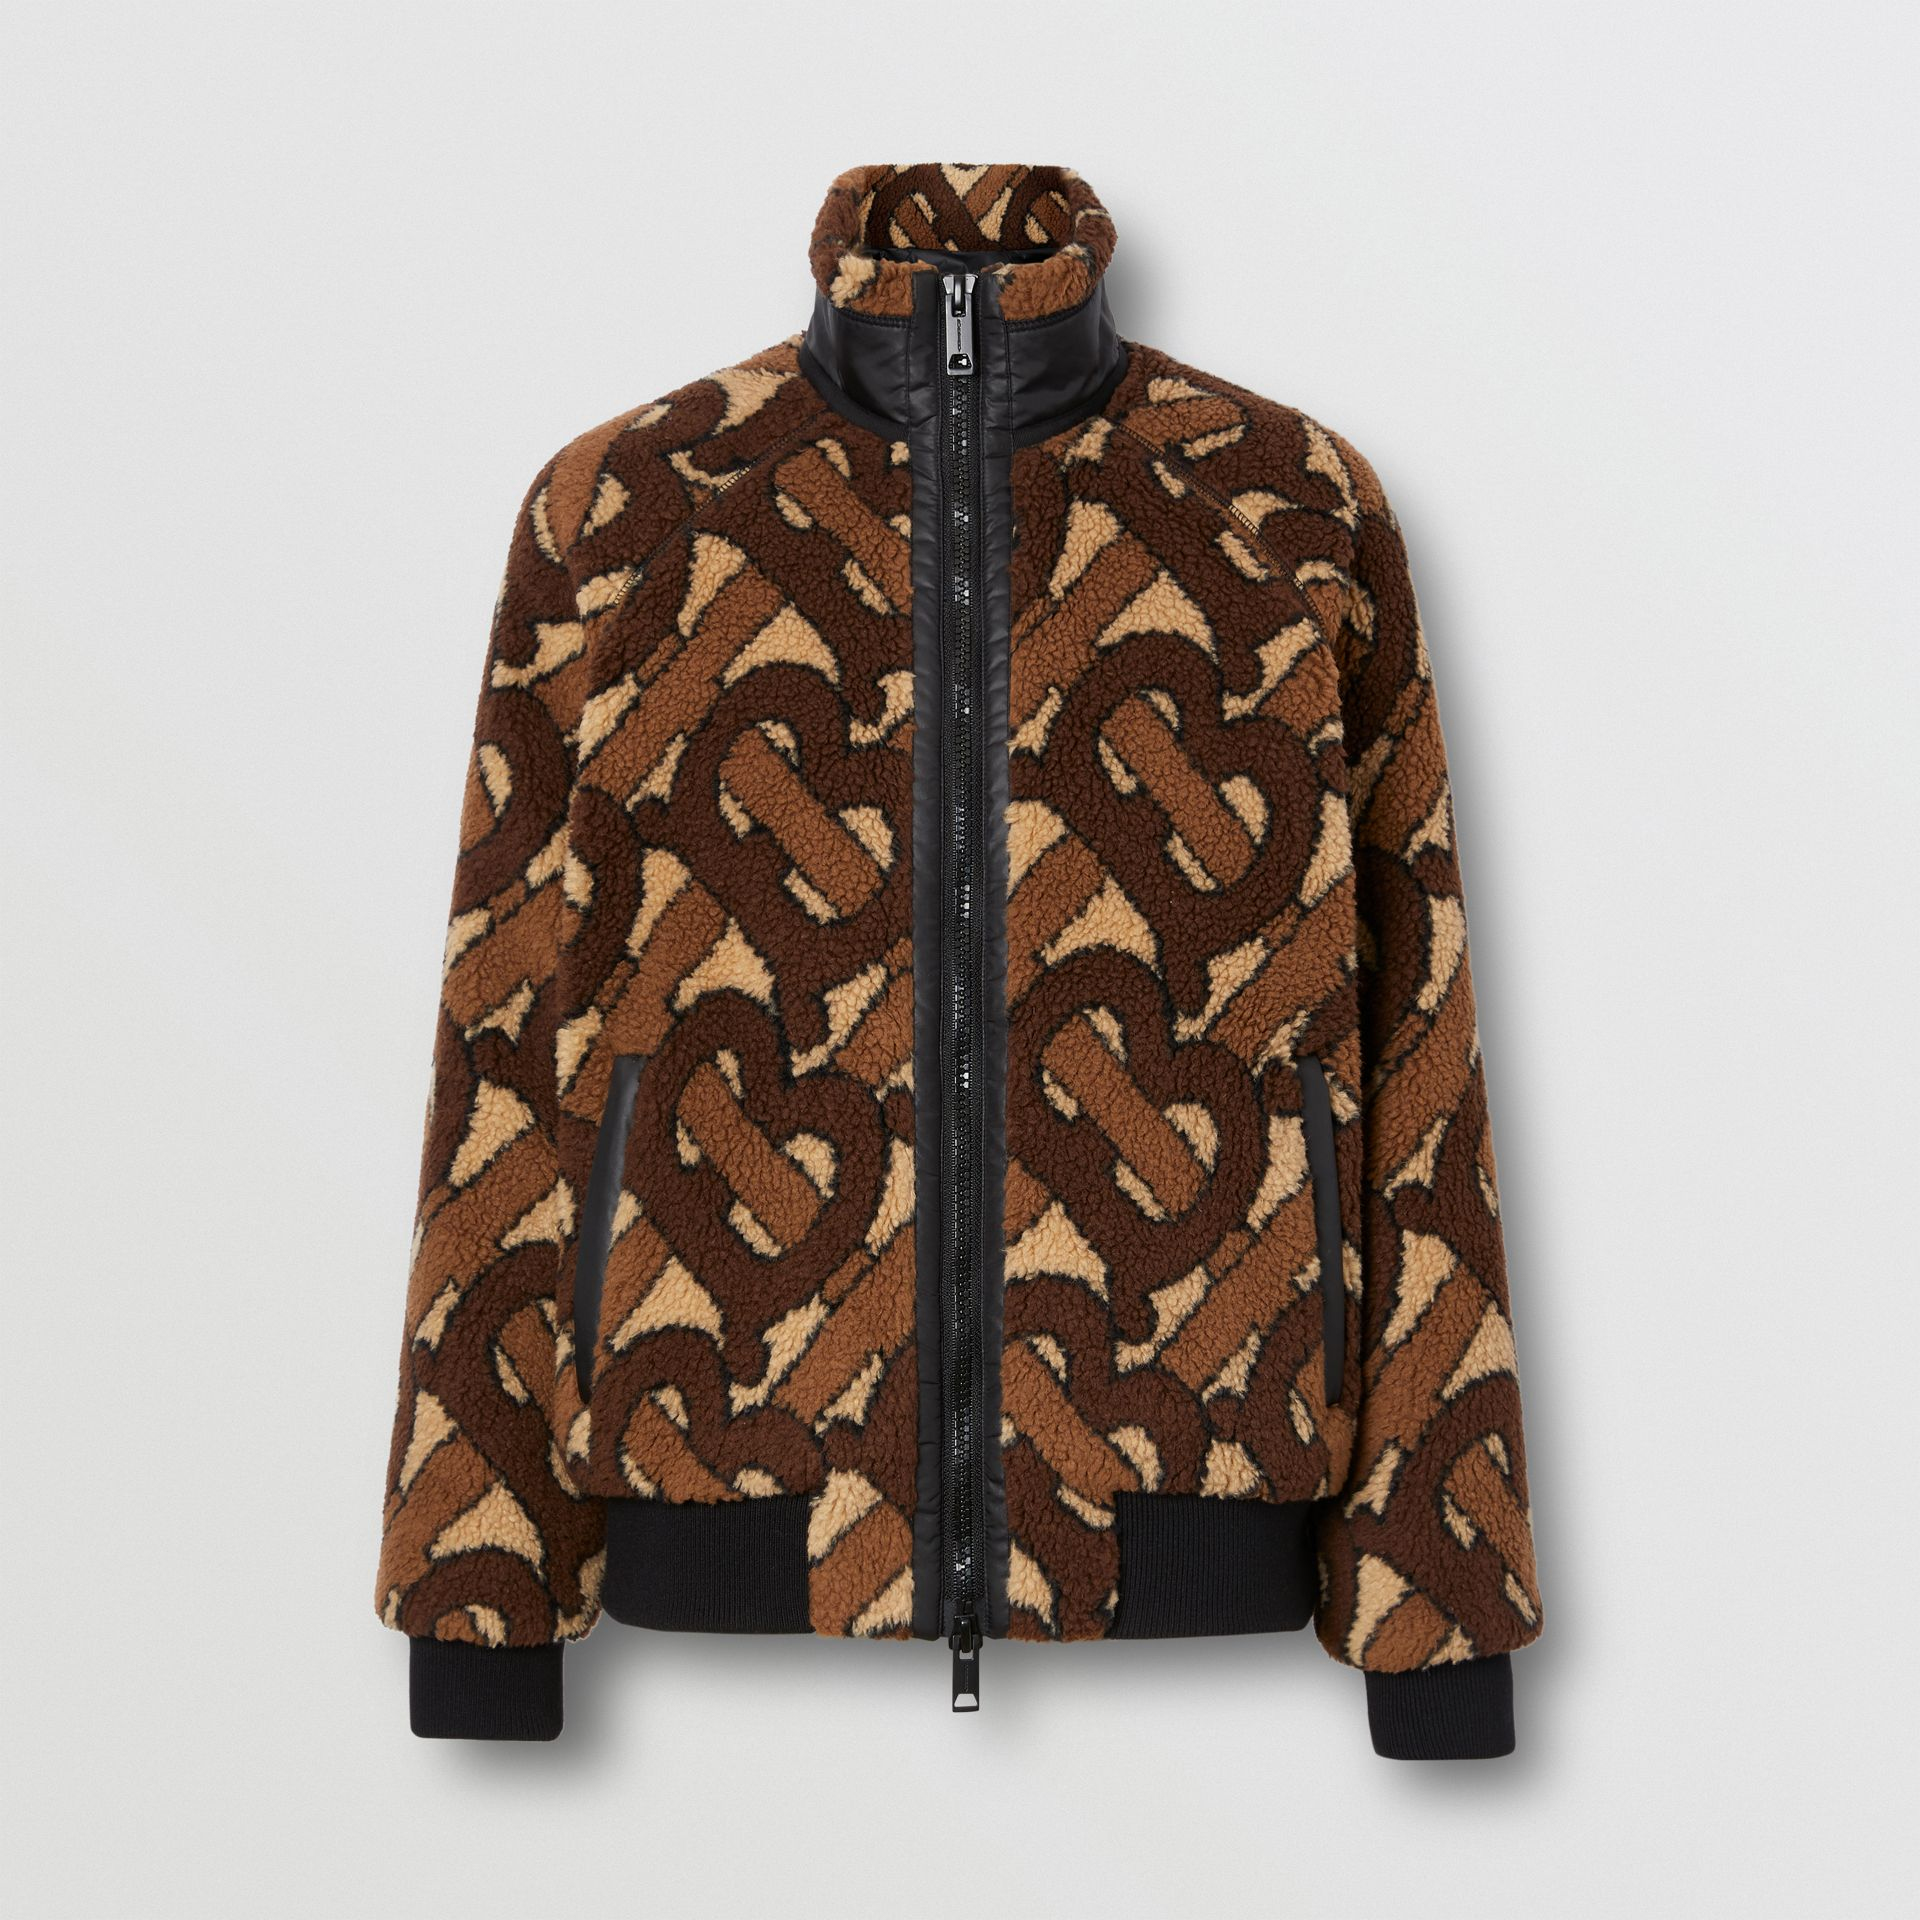 Monogram Fleece Jacquard Jacket in Bridle Brown - Women | Burberry United States - gallery image 3